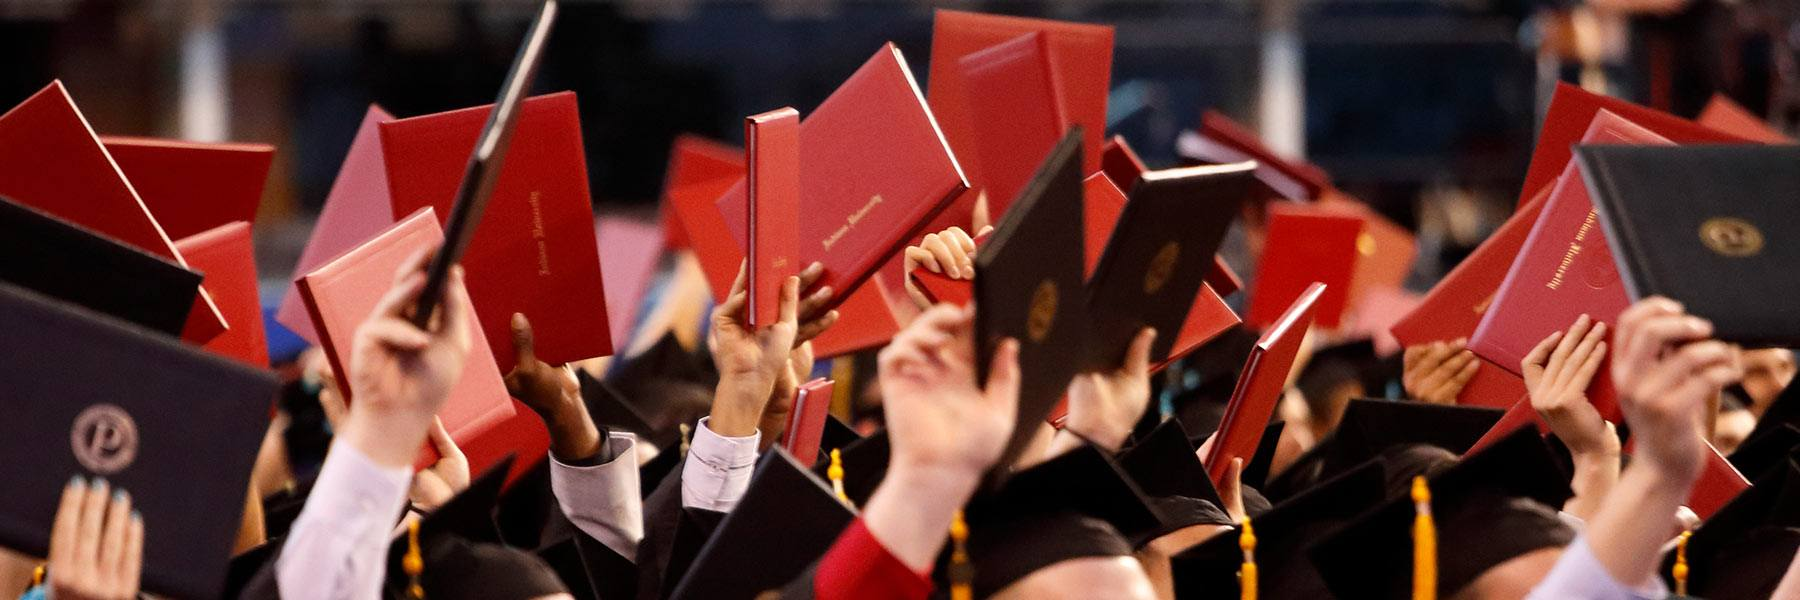 Students raise their diplomas at Commencement.